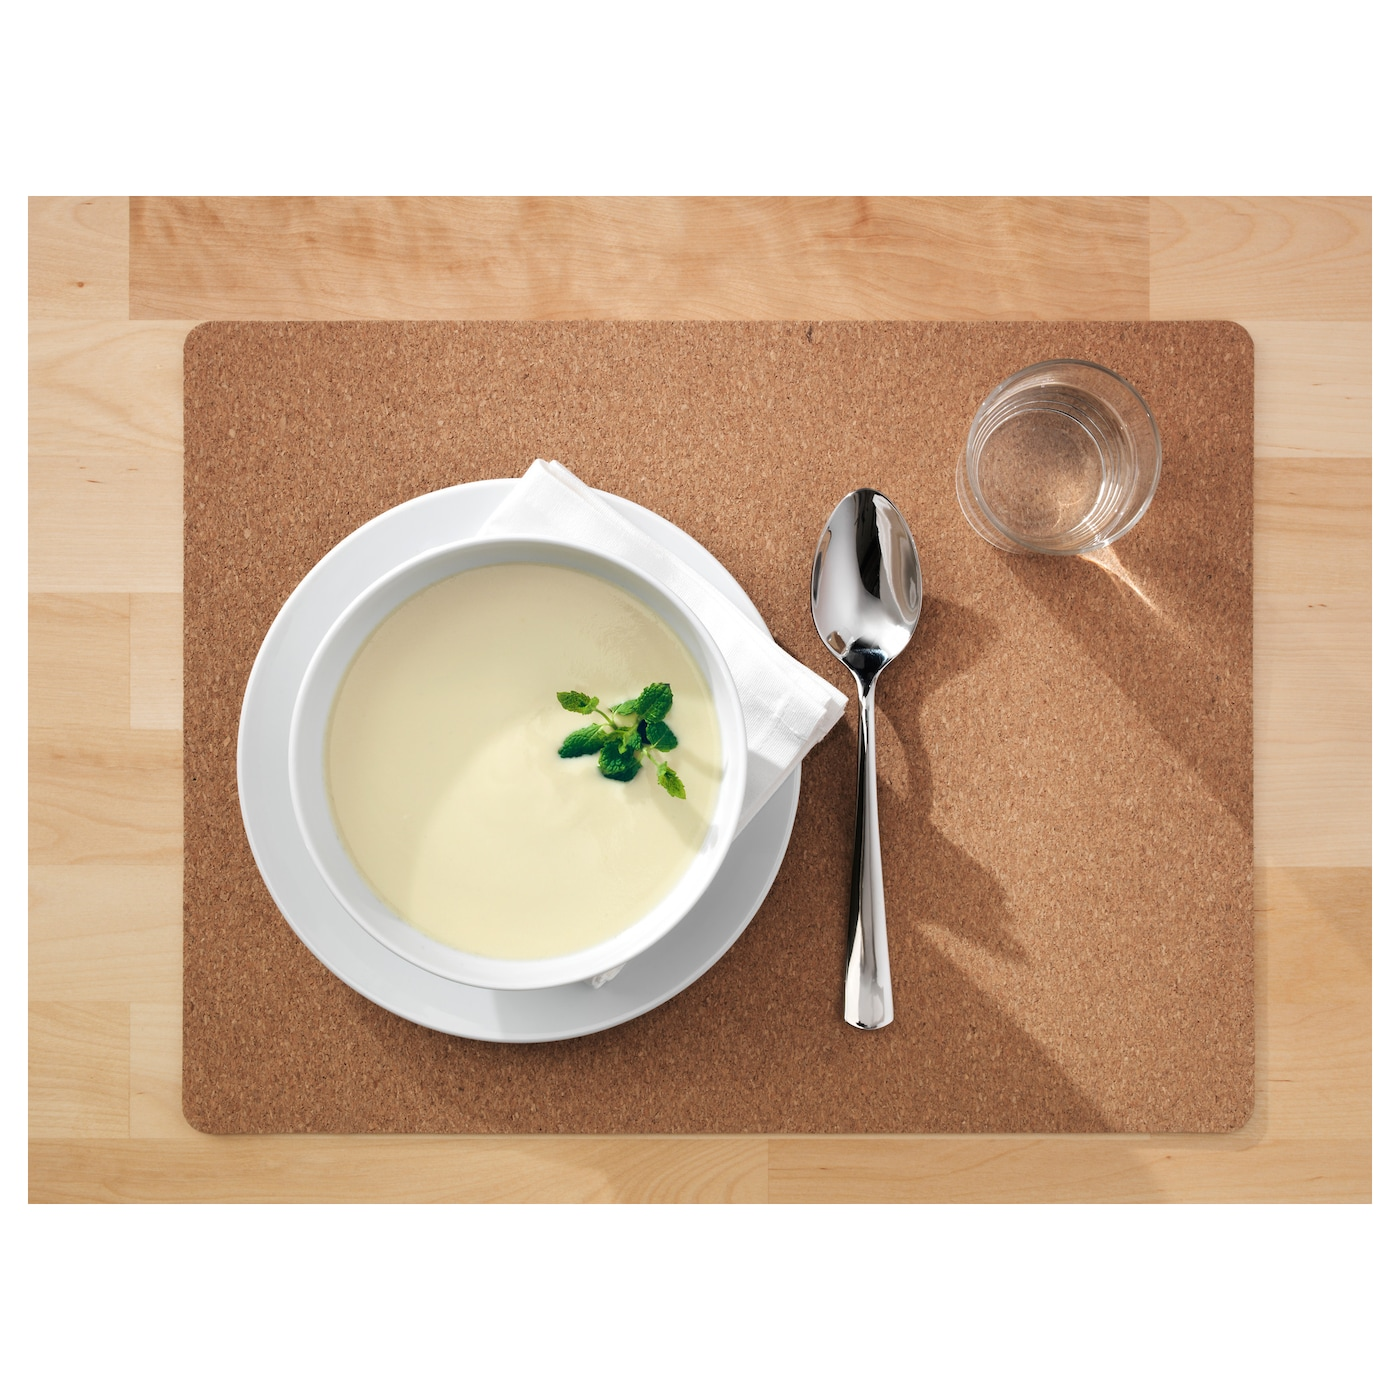 IKEA AVSKILD place mat Protects the table top surface and reduces noise from plates and cutlery.